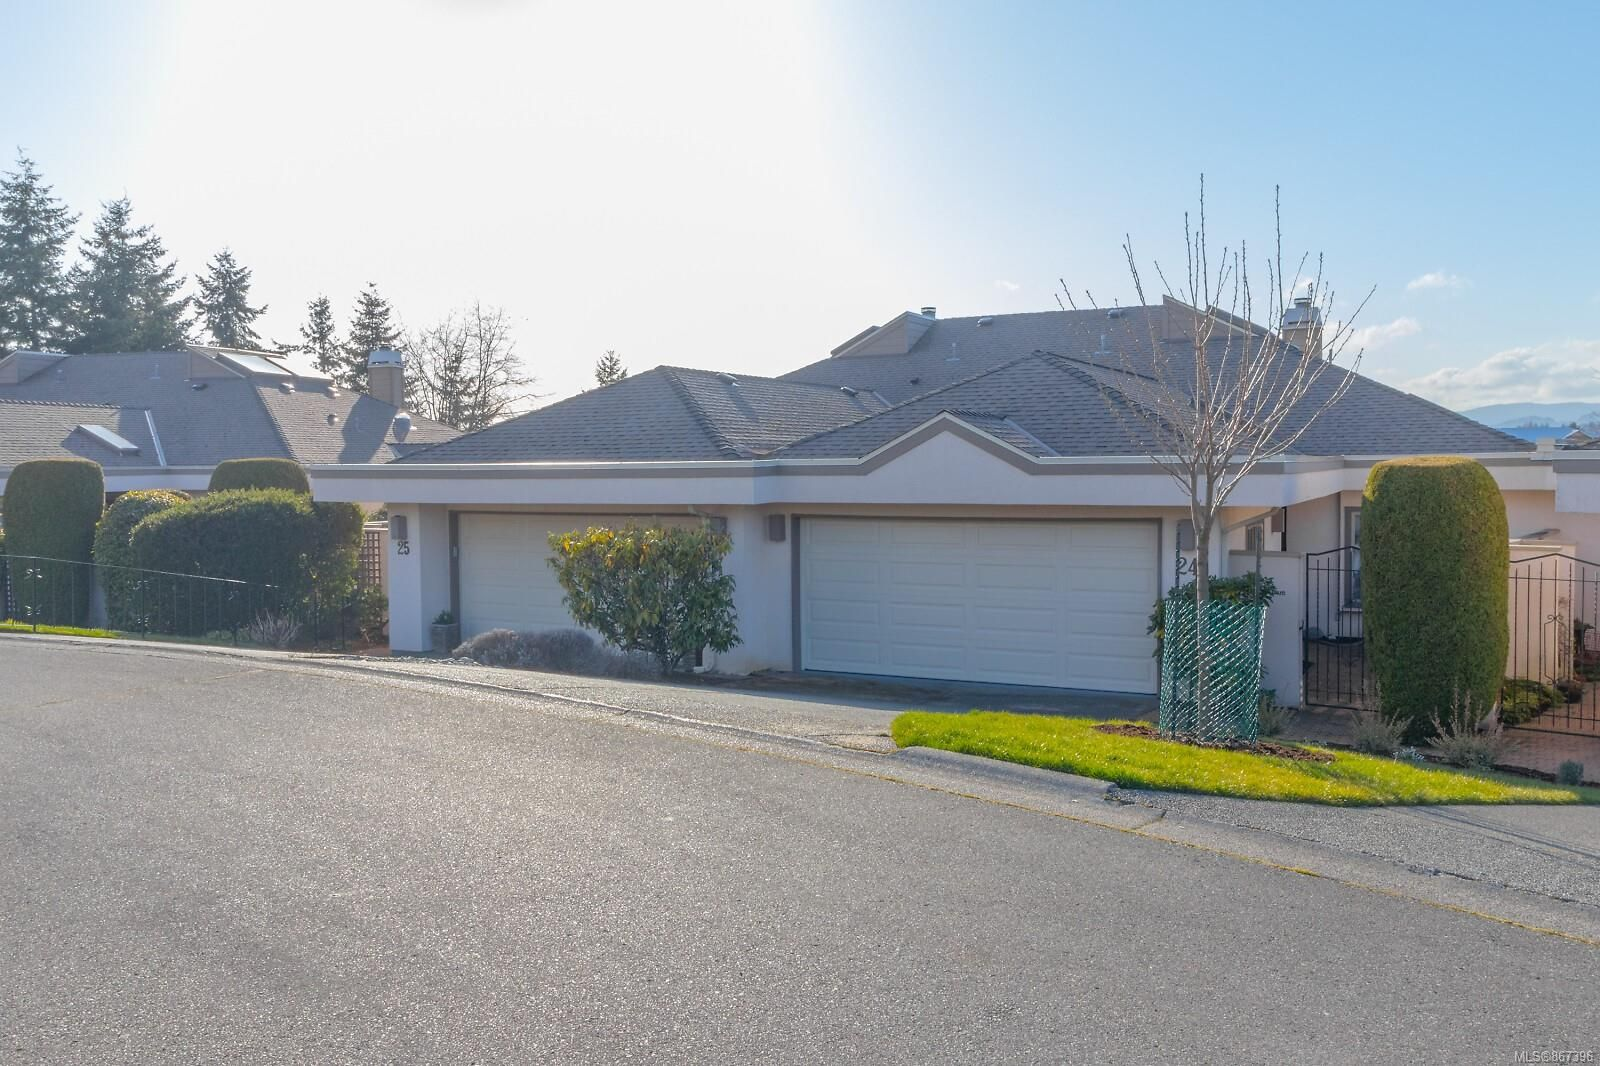 Main Photo: 24 4318 Emily Carr Dr in : SE Broadmead Row/Townhouse for sale (Saanich East)  : MLS®# 867396